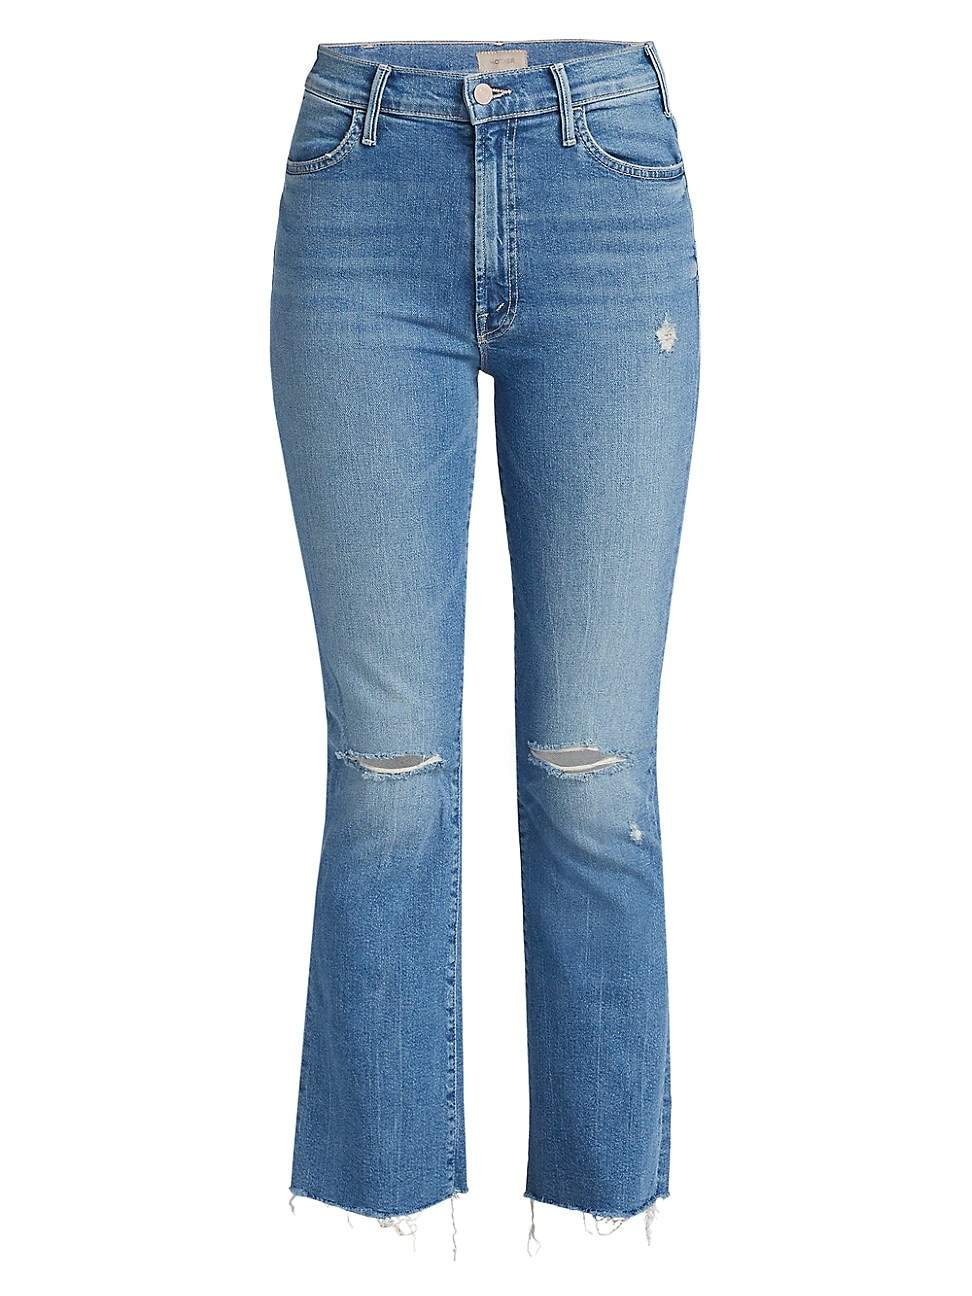 Mother Denims WOMEN'S THE HUSTLER ANKLE FRAY JEANS